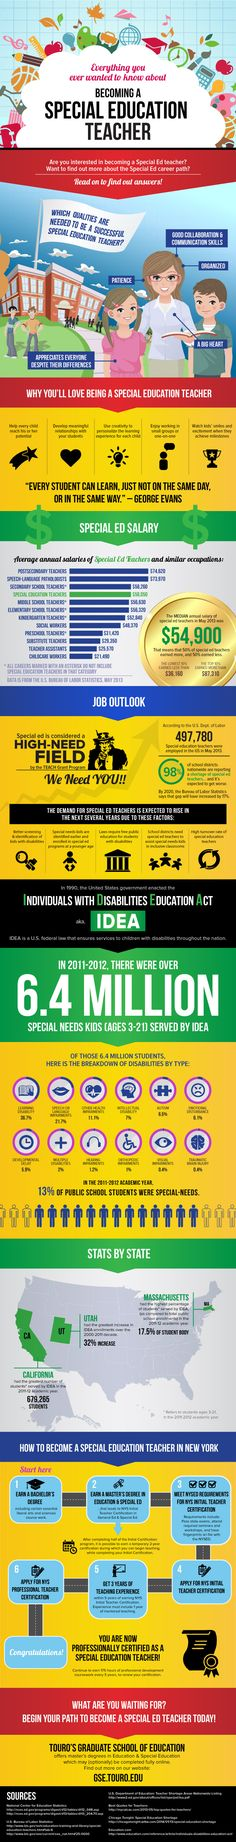 How To Become a Special #Education Teacher Infographic | e-Learning Infographics